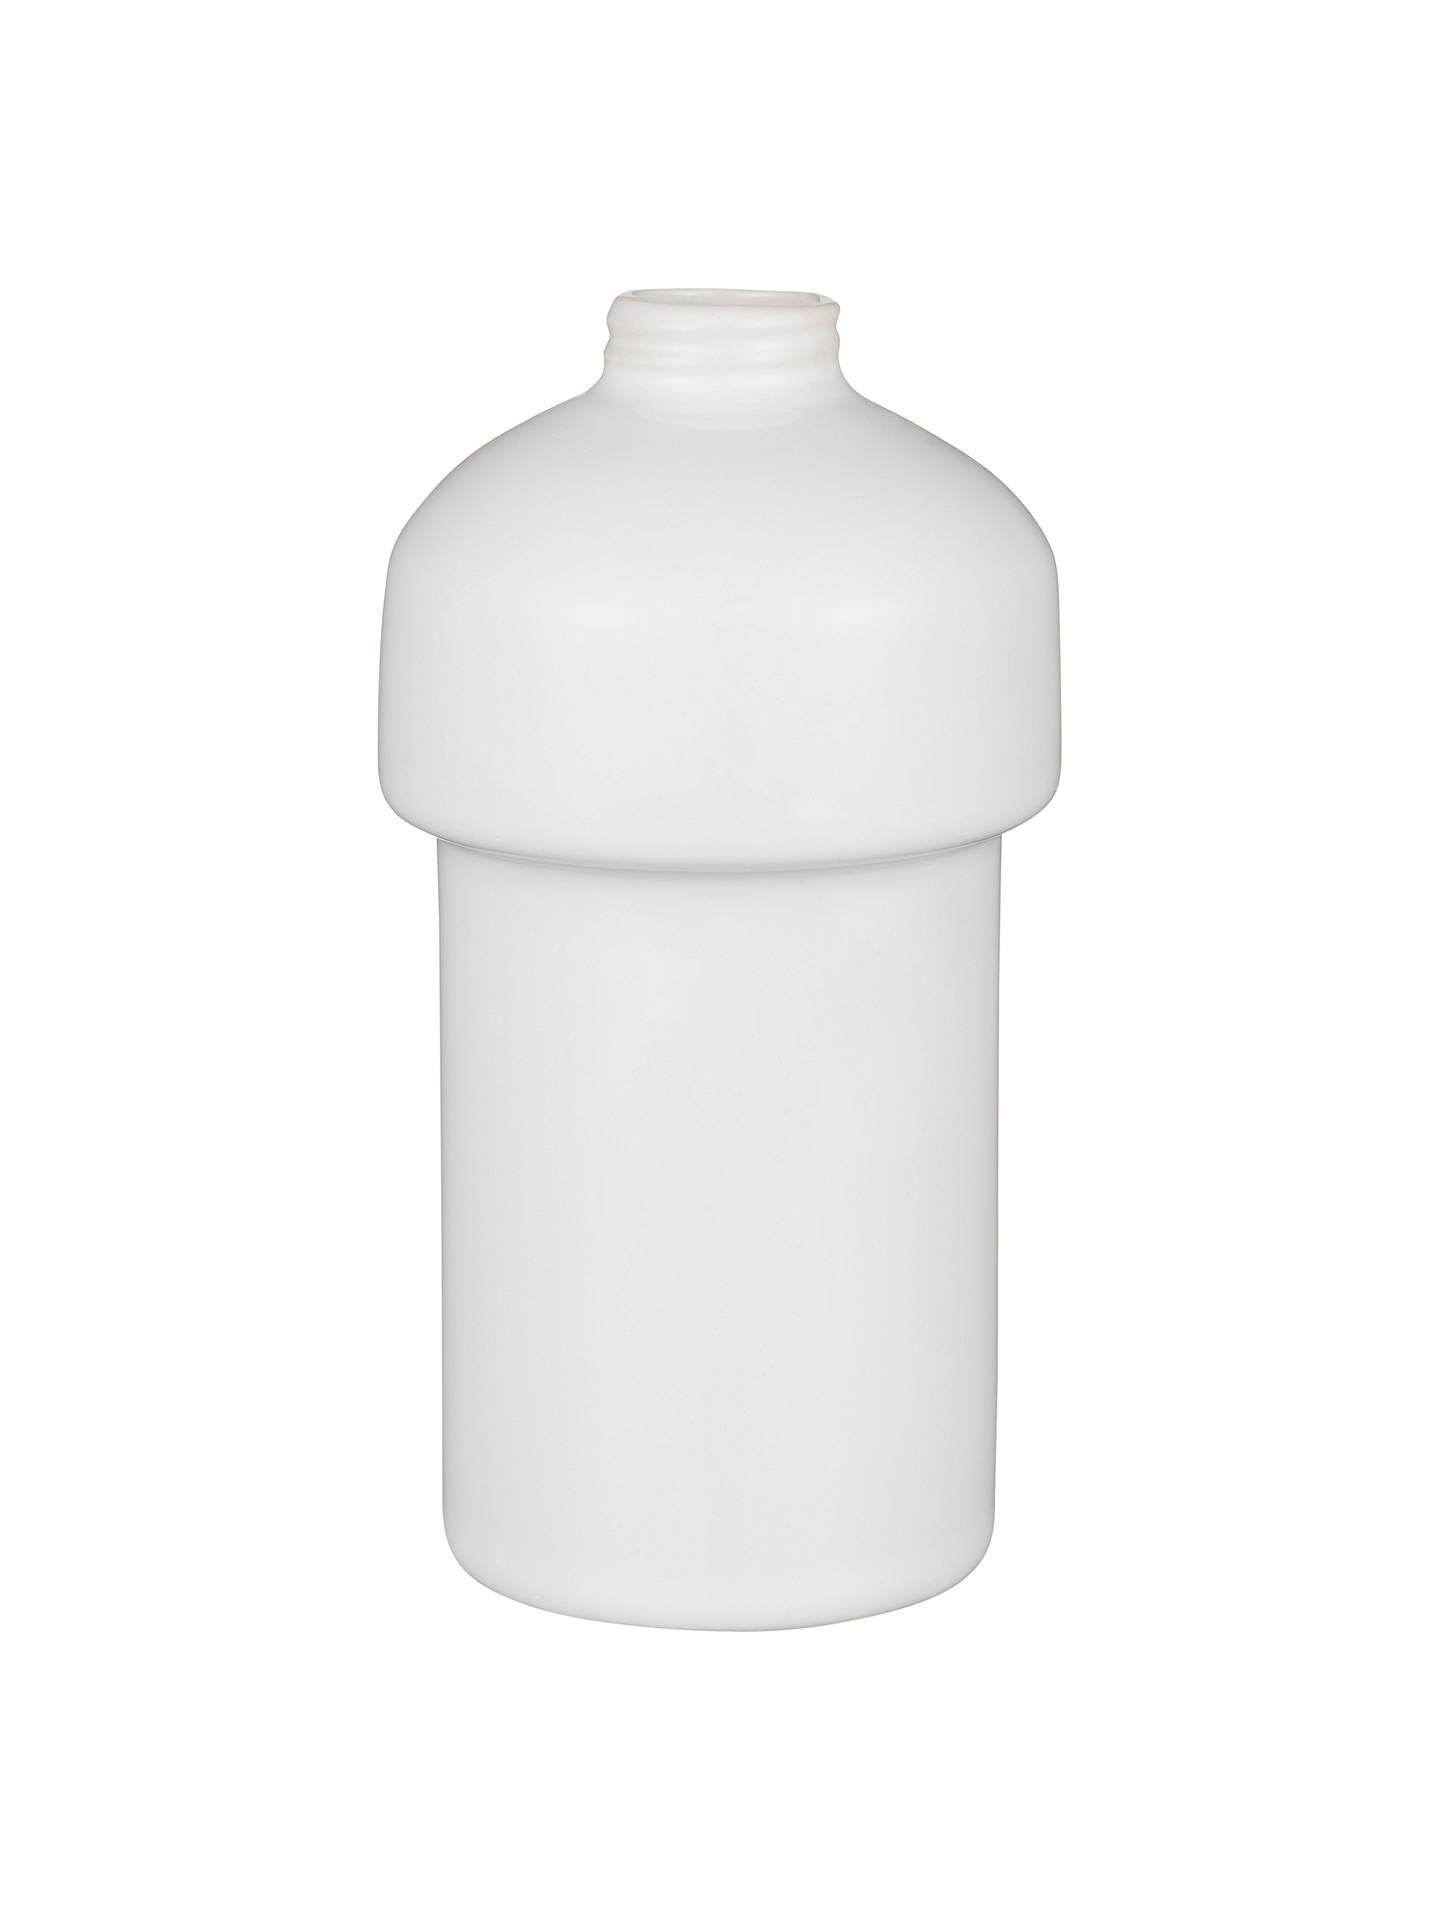 Buy John Lewis & Partners New Classic/Solo Spare Soap Dispenser, White Online at johnlewis.com